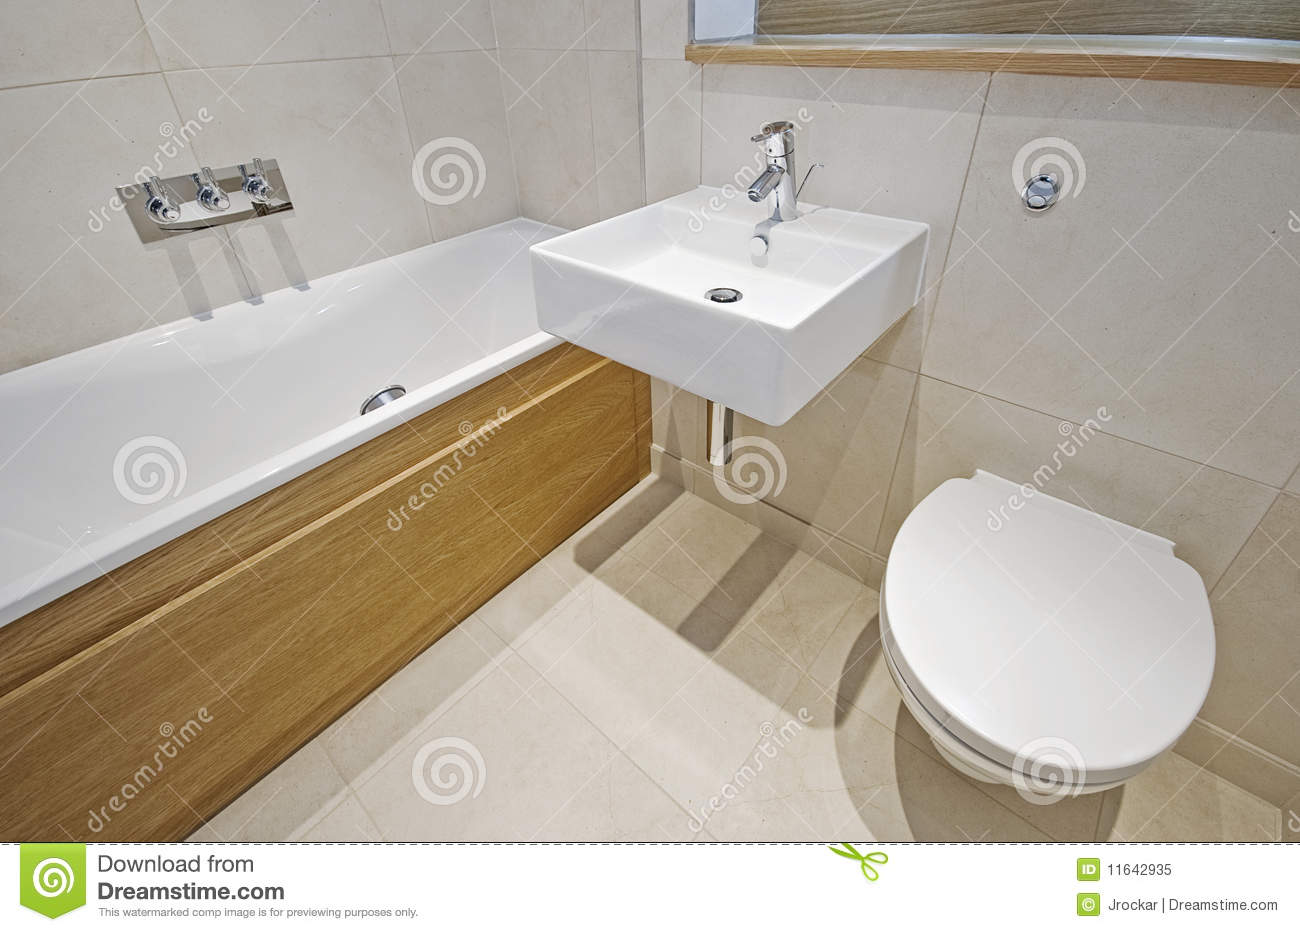 Bathroom with designer appliances royalty free stock photo for Restroom appliances